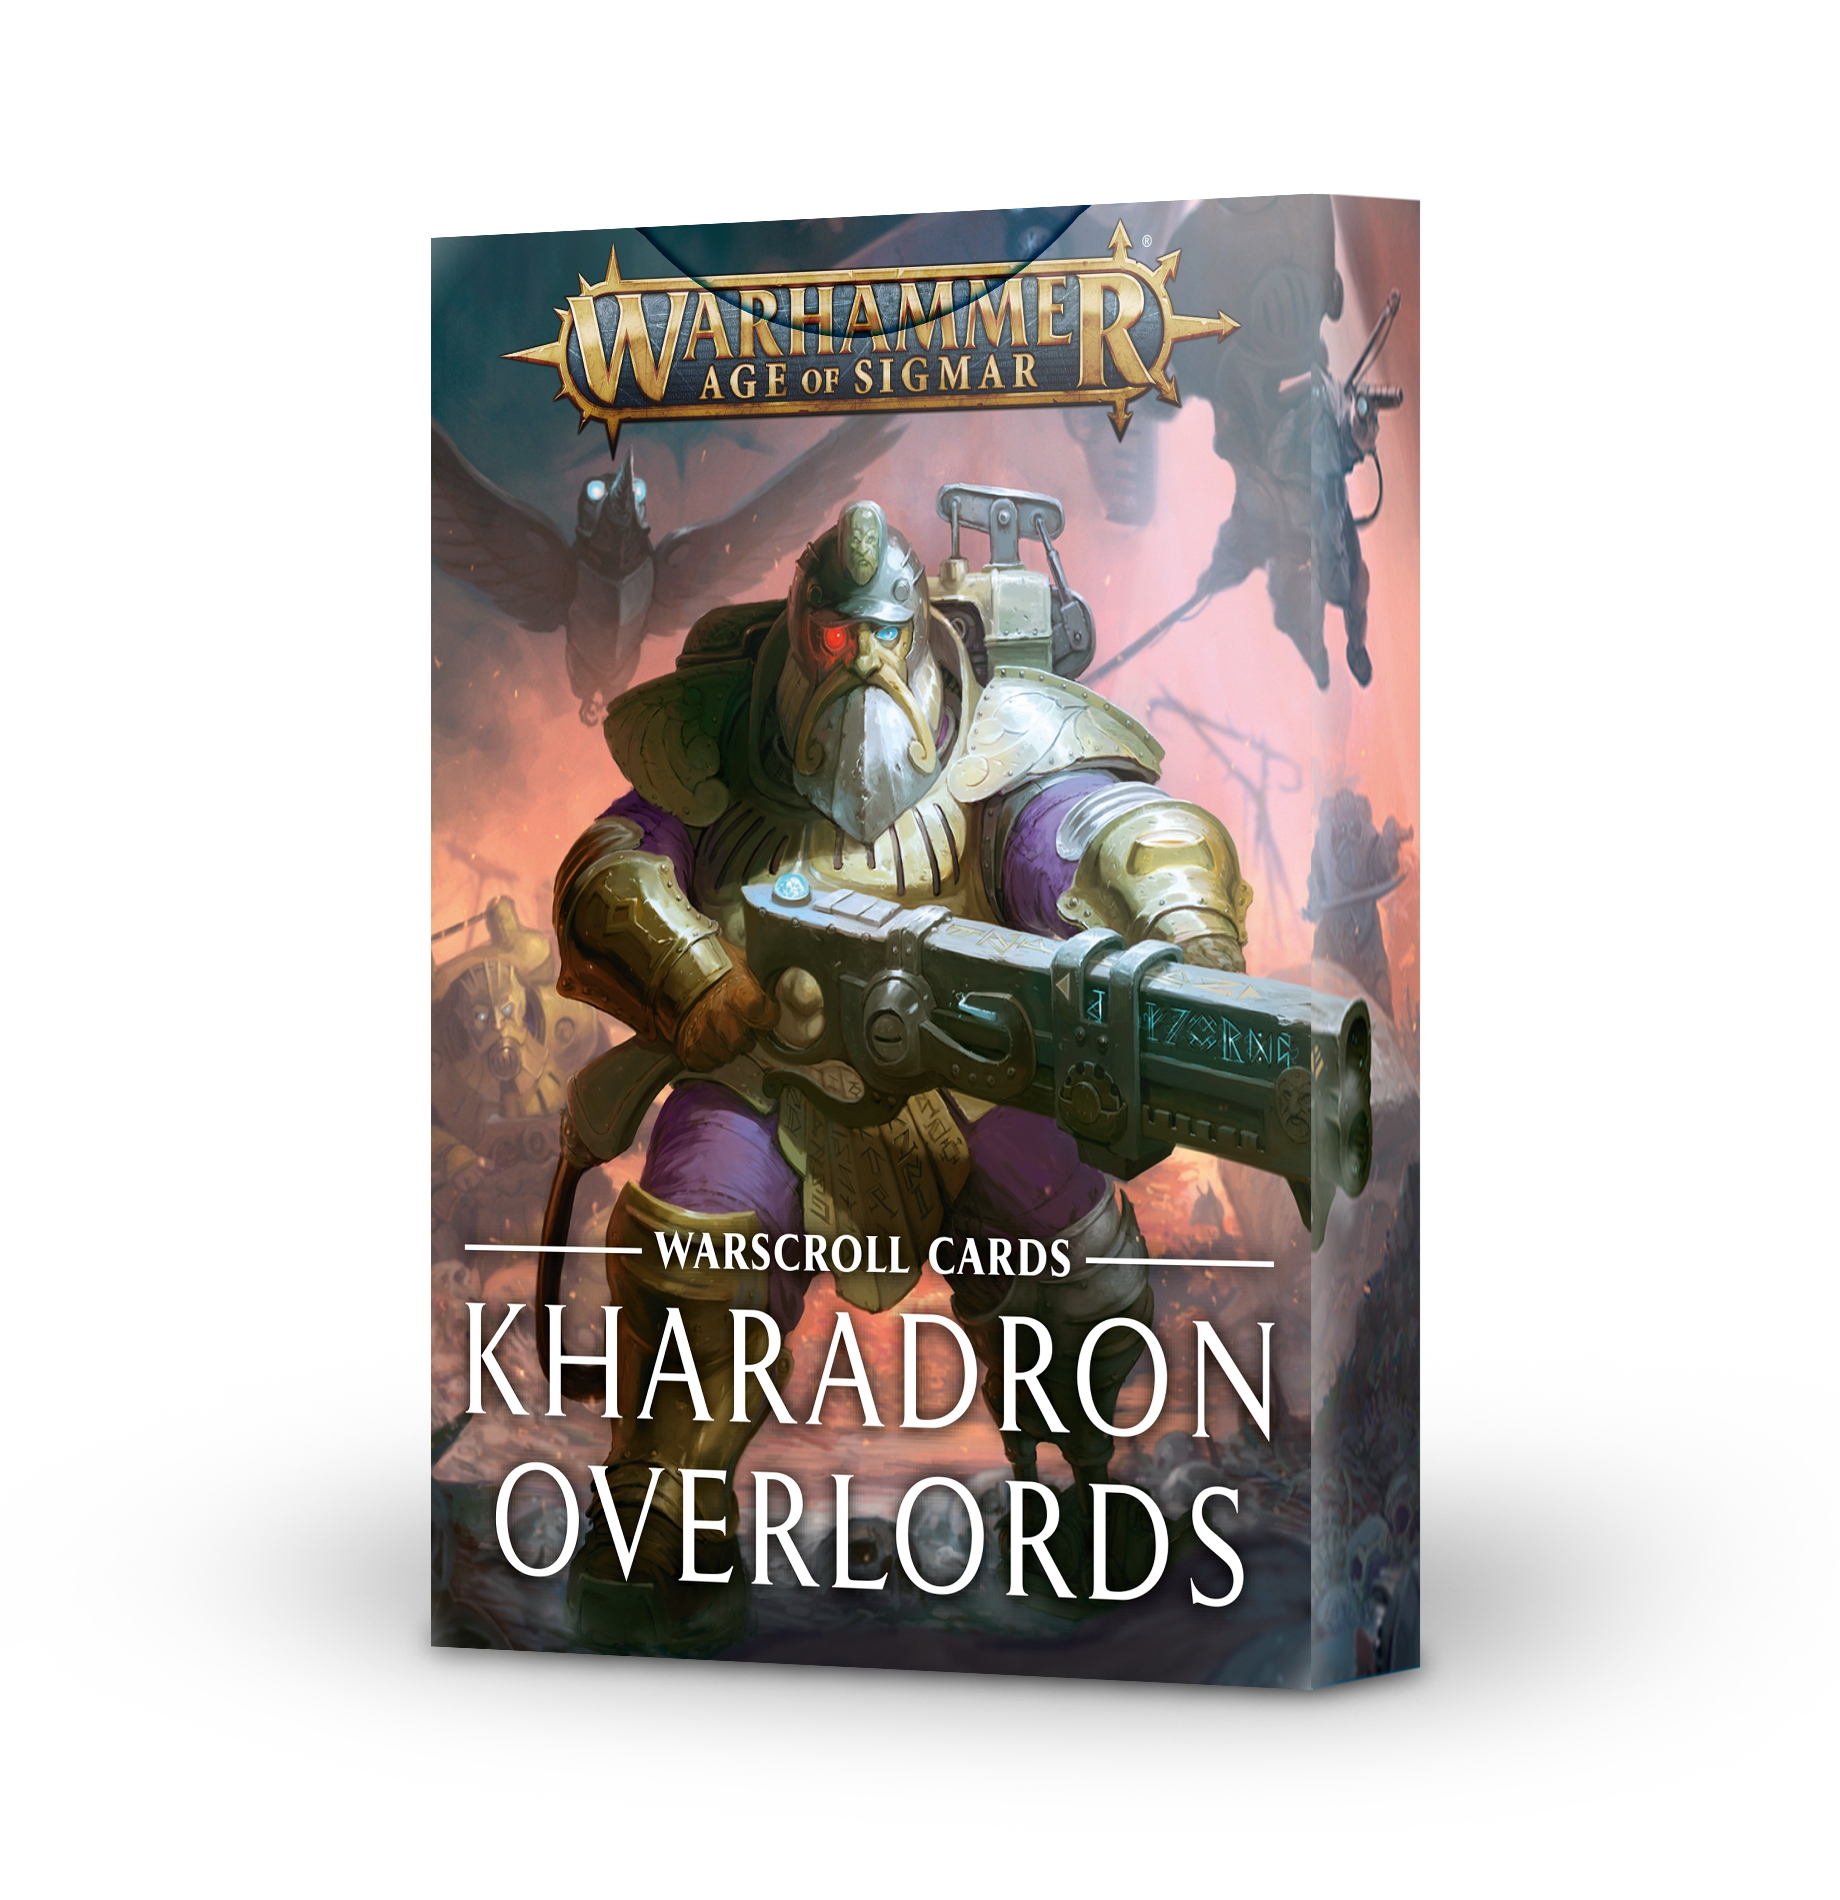 Warhammer Age of Sigmar: Warscroll Cards - Kharadron Overlords (2020 Edition)